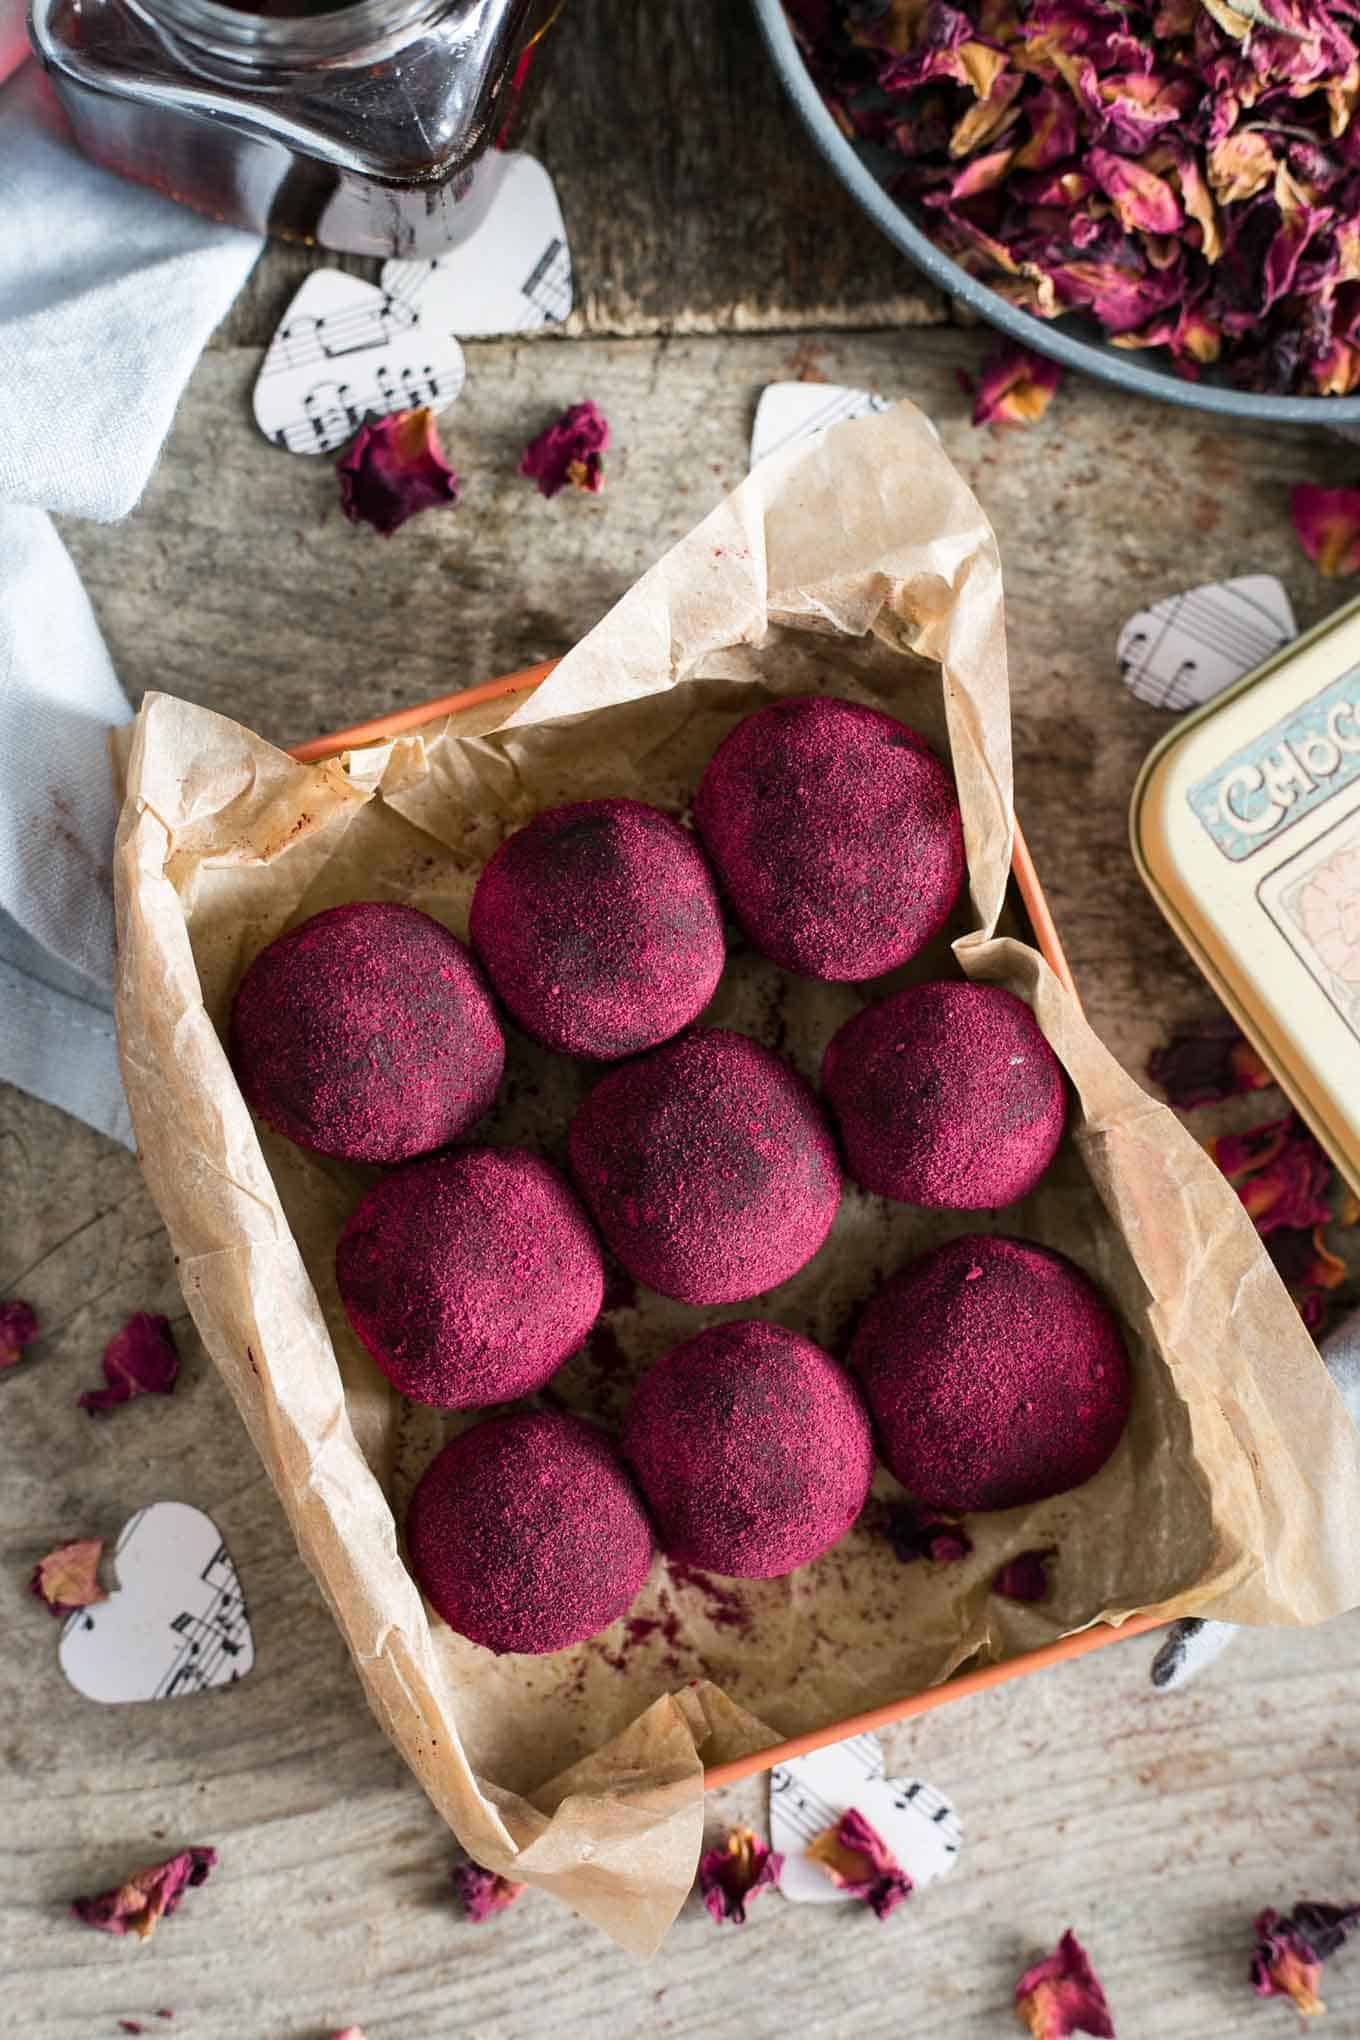 Delicious chocolate and peanut butter truffles. Great as a Valentine's gift for the loved ones! #vegan #truffles #healthysnack   via @annabanana.co